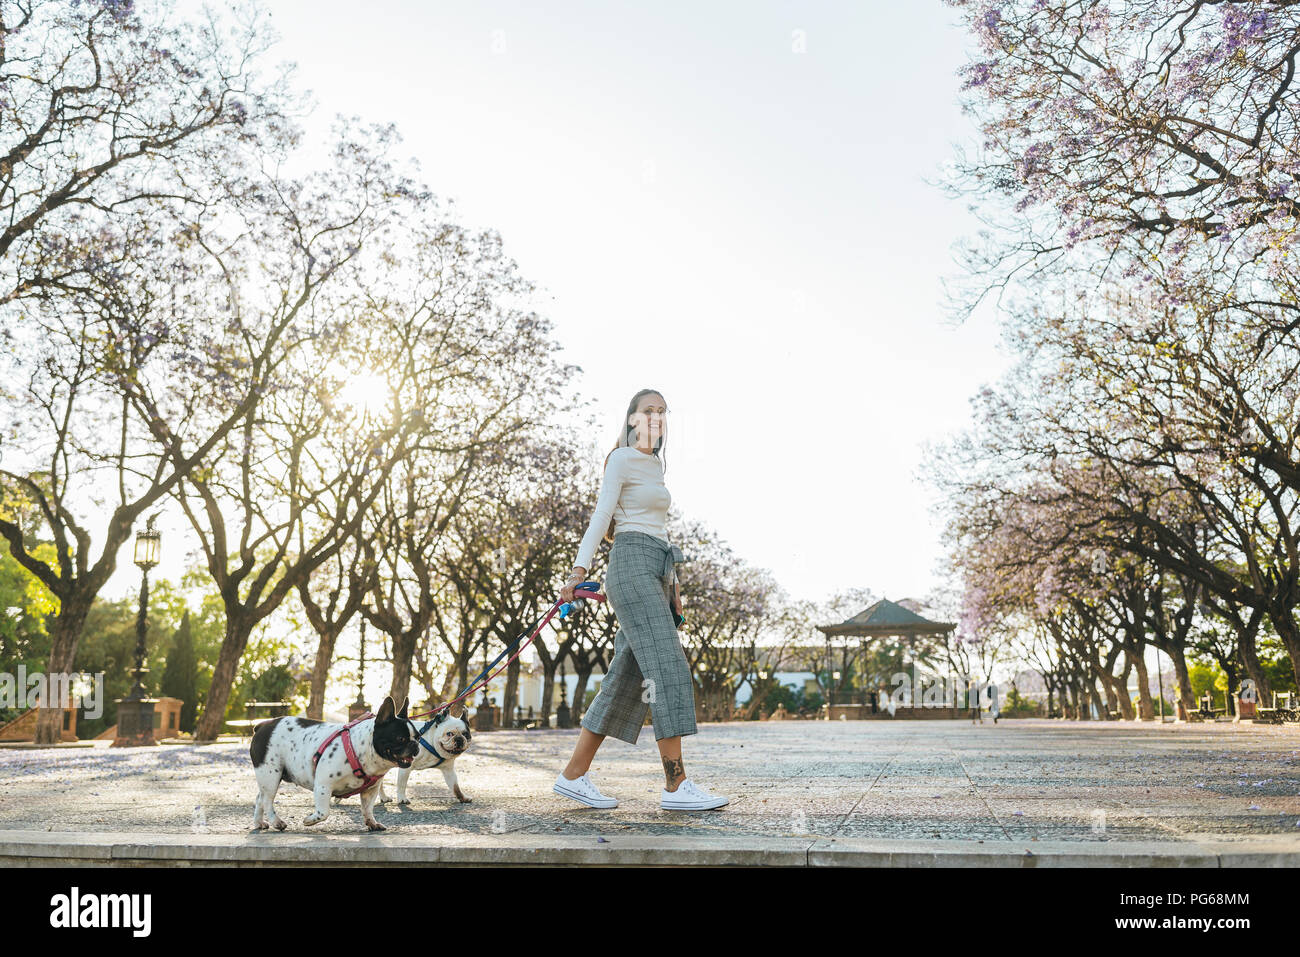 Spain, Andalusia, Jerez de la Frontera, Woman walking with two dogs on square - Stock Image